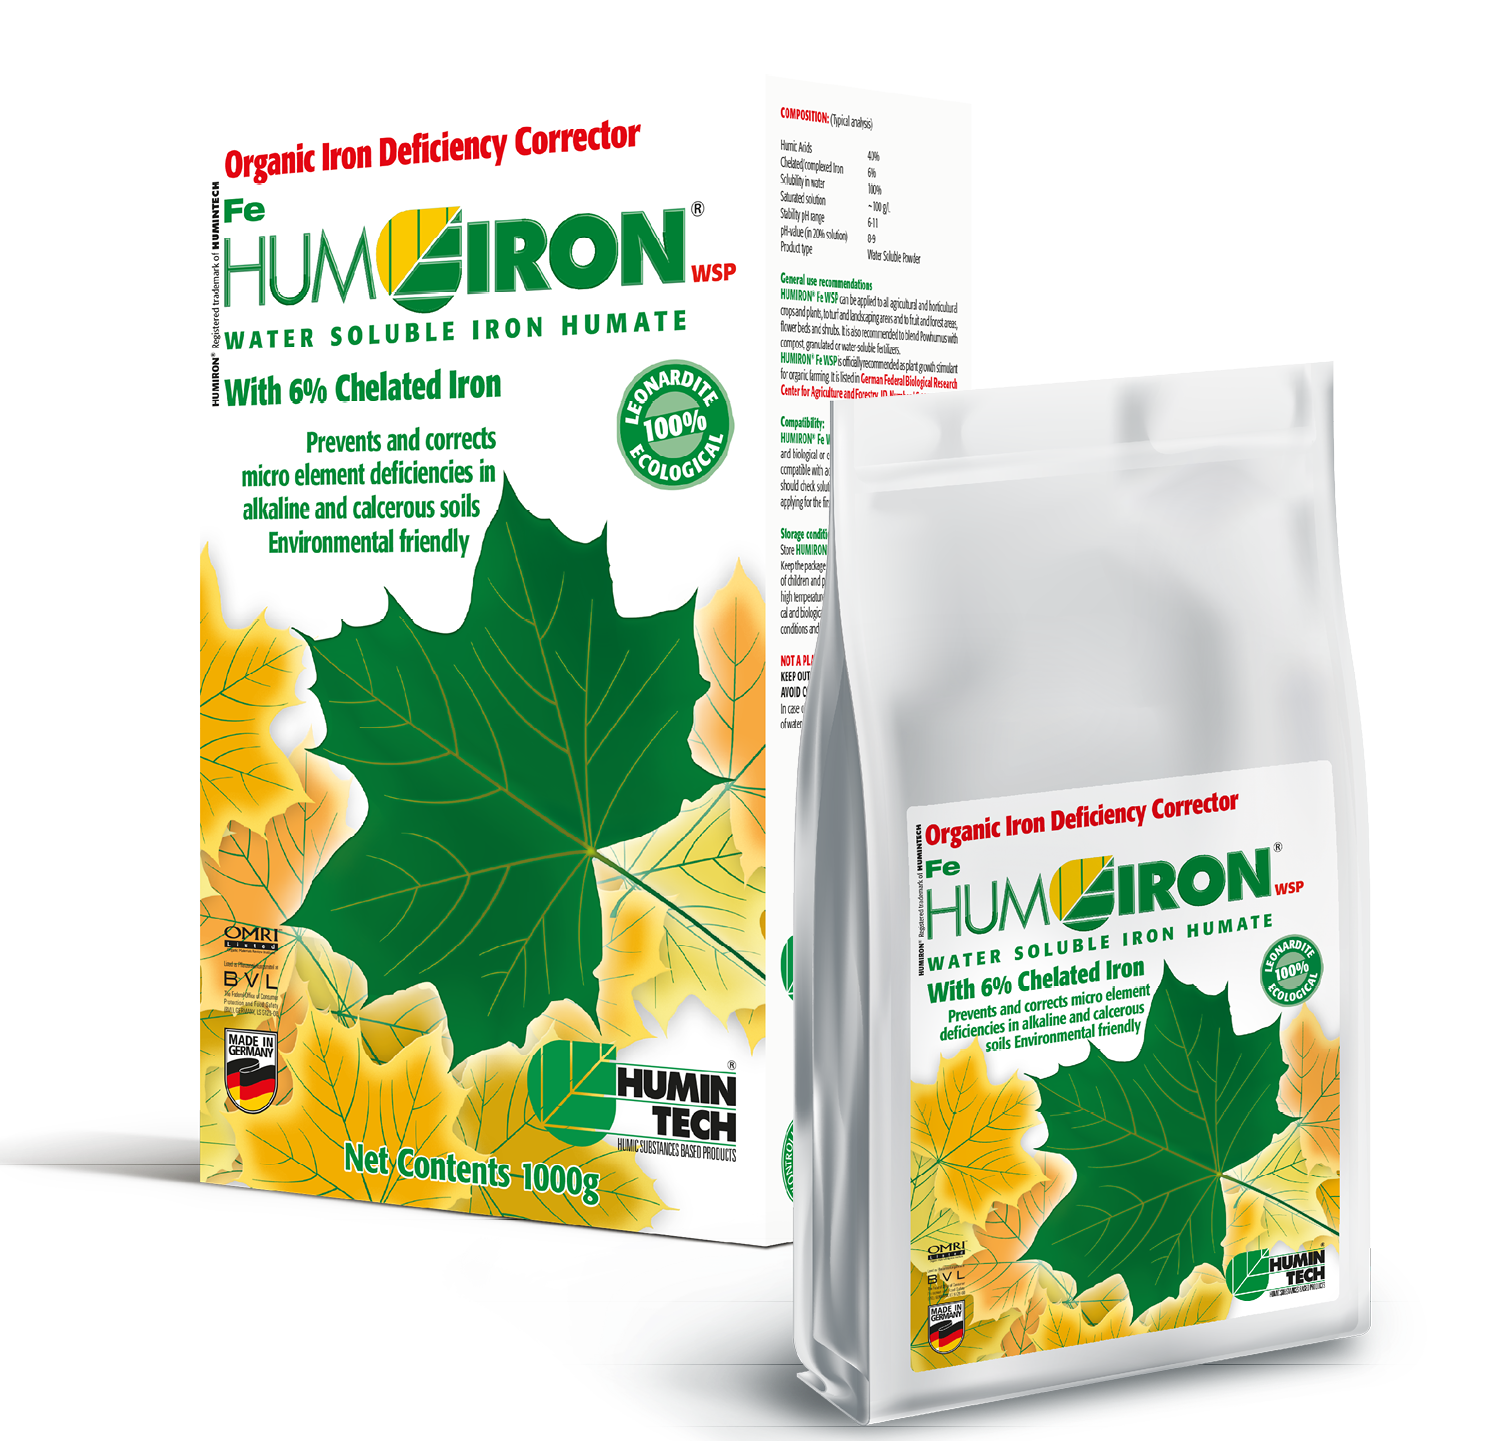 HUMIRON Fe WSP Organic Iron Deficiency Corrector Iron Humate with 6% Chelated and Complexed Iron